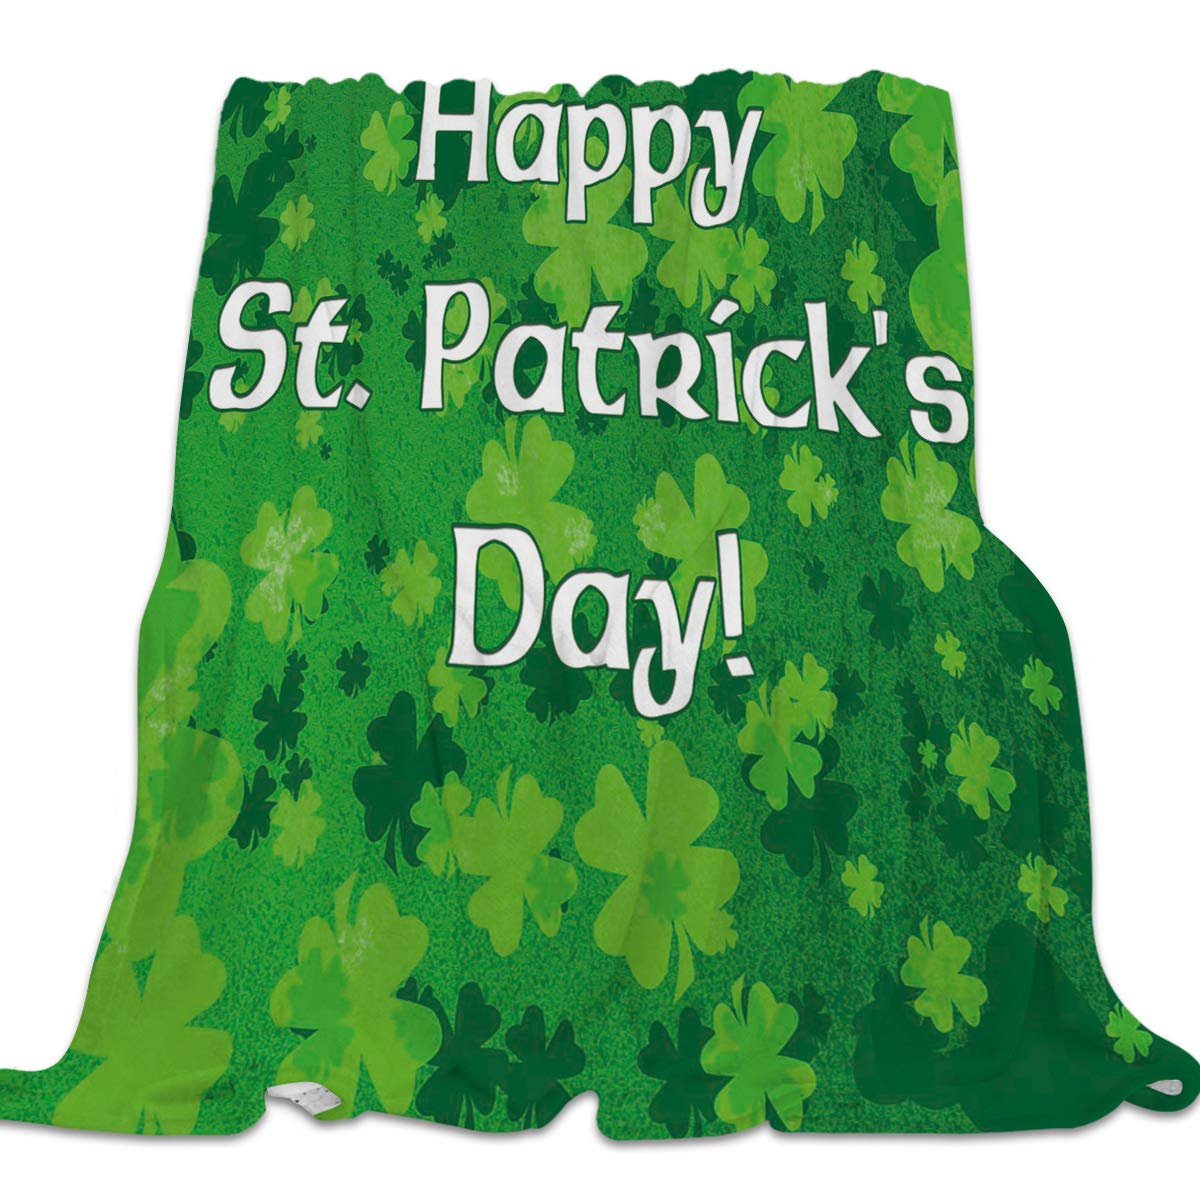 St. Patrick's Day5cly3593 49x79inch=125x200cm Clouday Flannel Fleece Bed Blanket Warm ThrowBlankets for Girls Boys,Cozy Lightweight Blankets for Bedroom Living Room Sofa Couch,Beautiful Universe Pattern,49x59inch